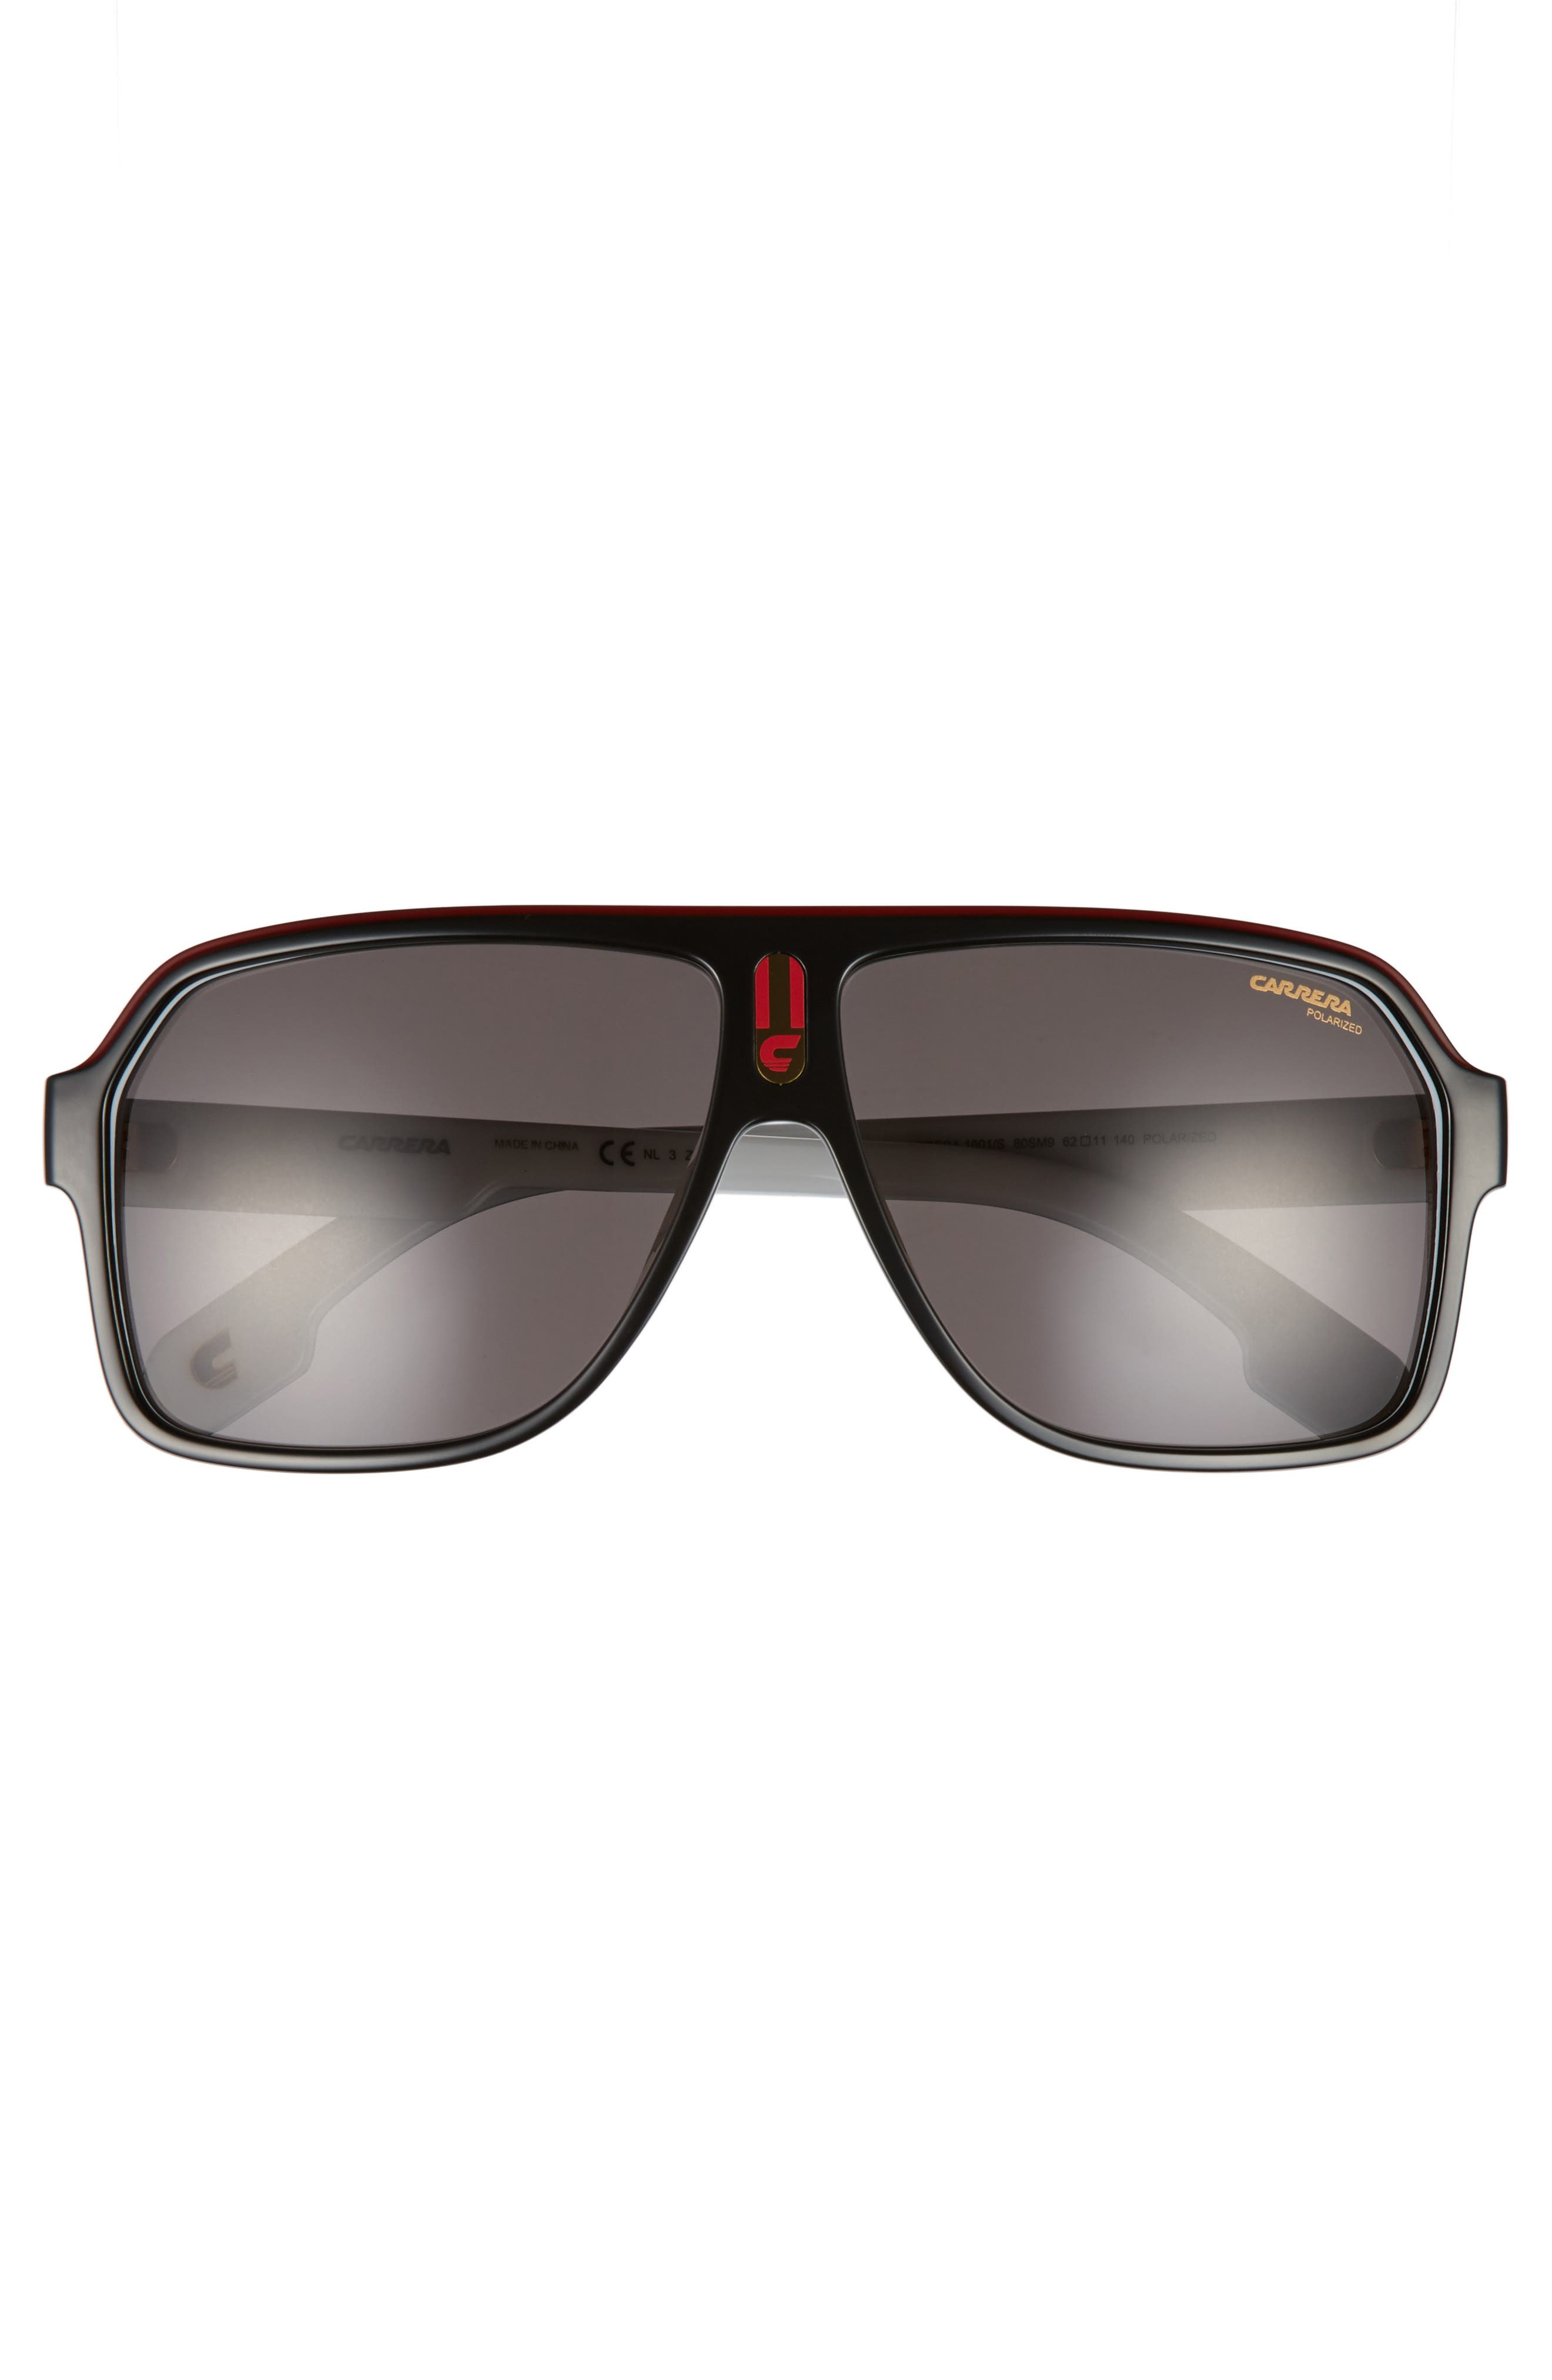 1001/S 62mm Sunglasses,                             Alternate thumbnail 2, color,                             Black White/ Gray Polarized